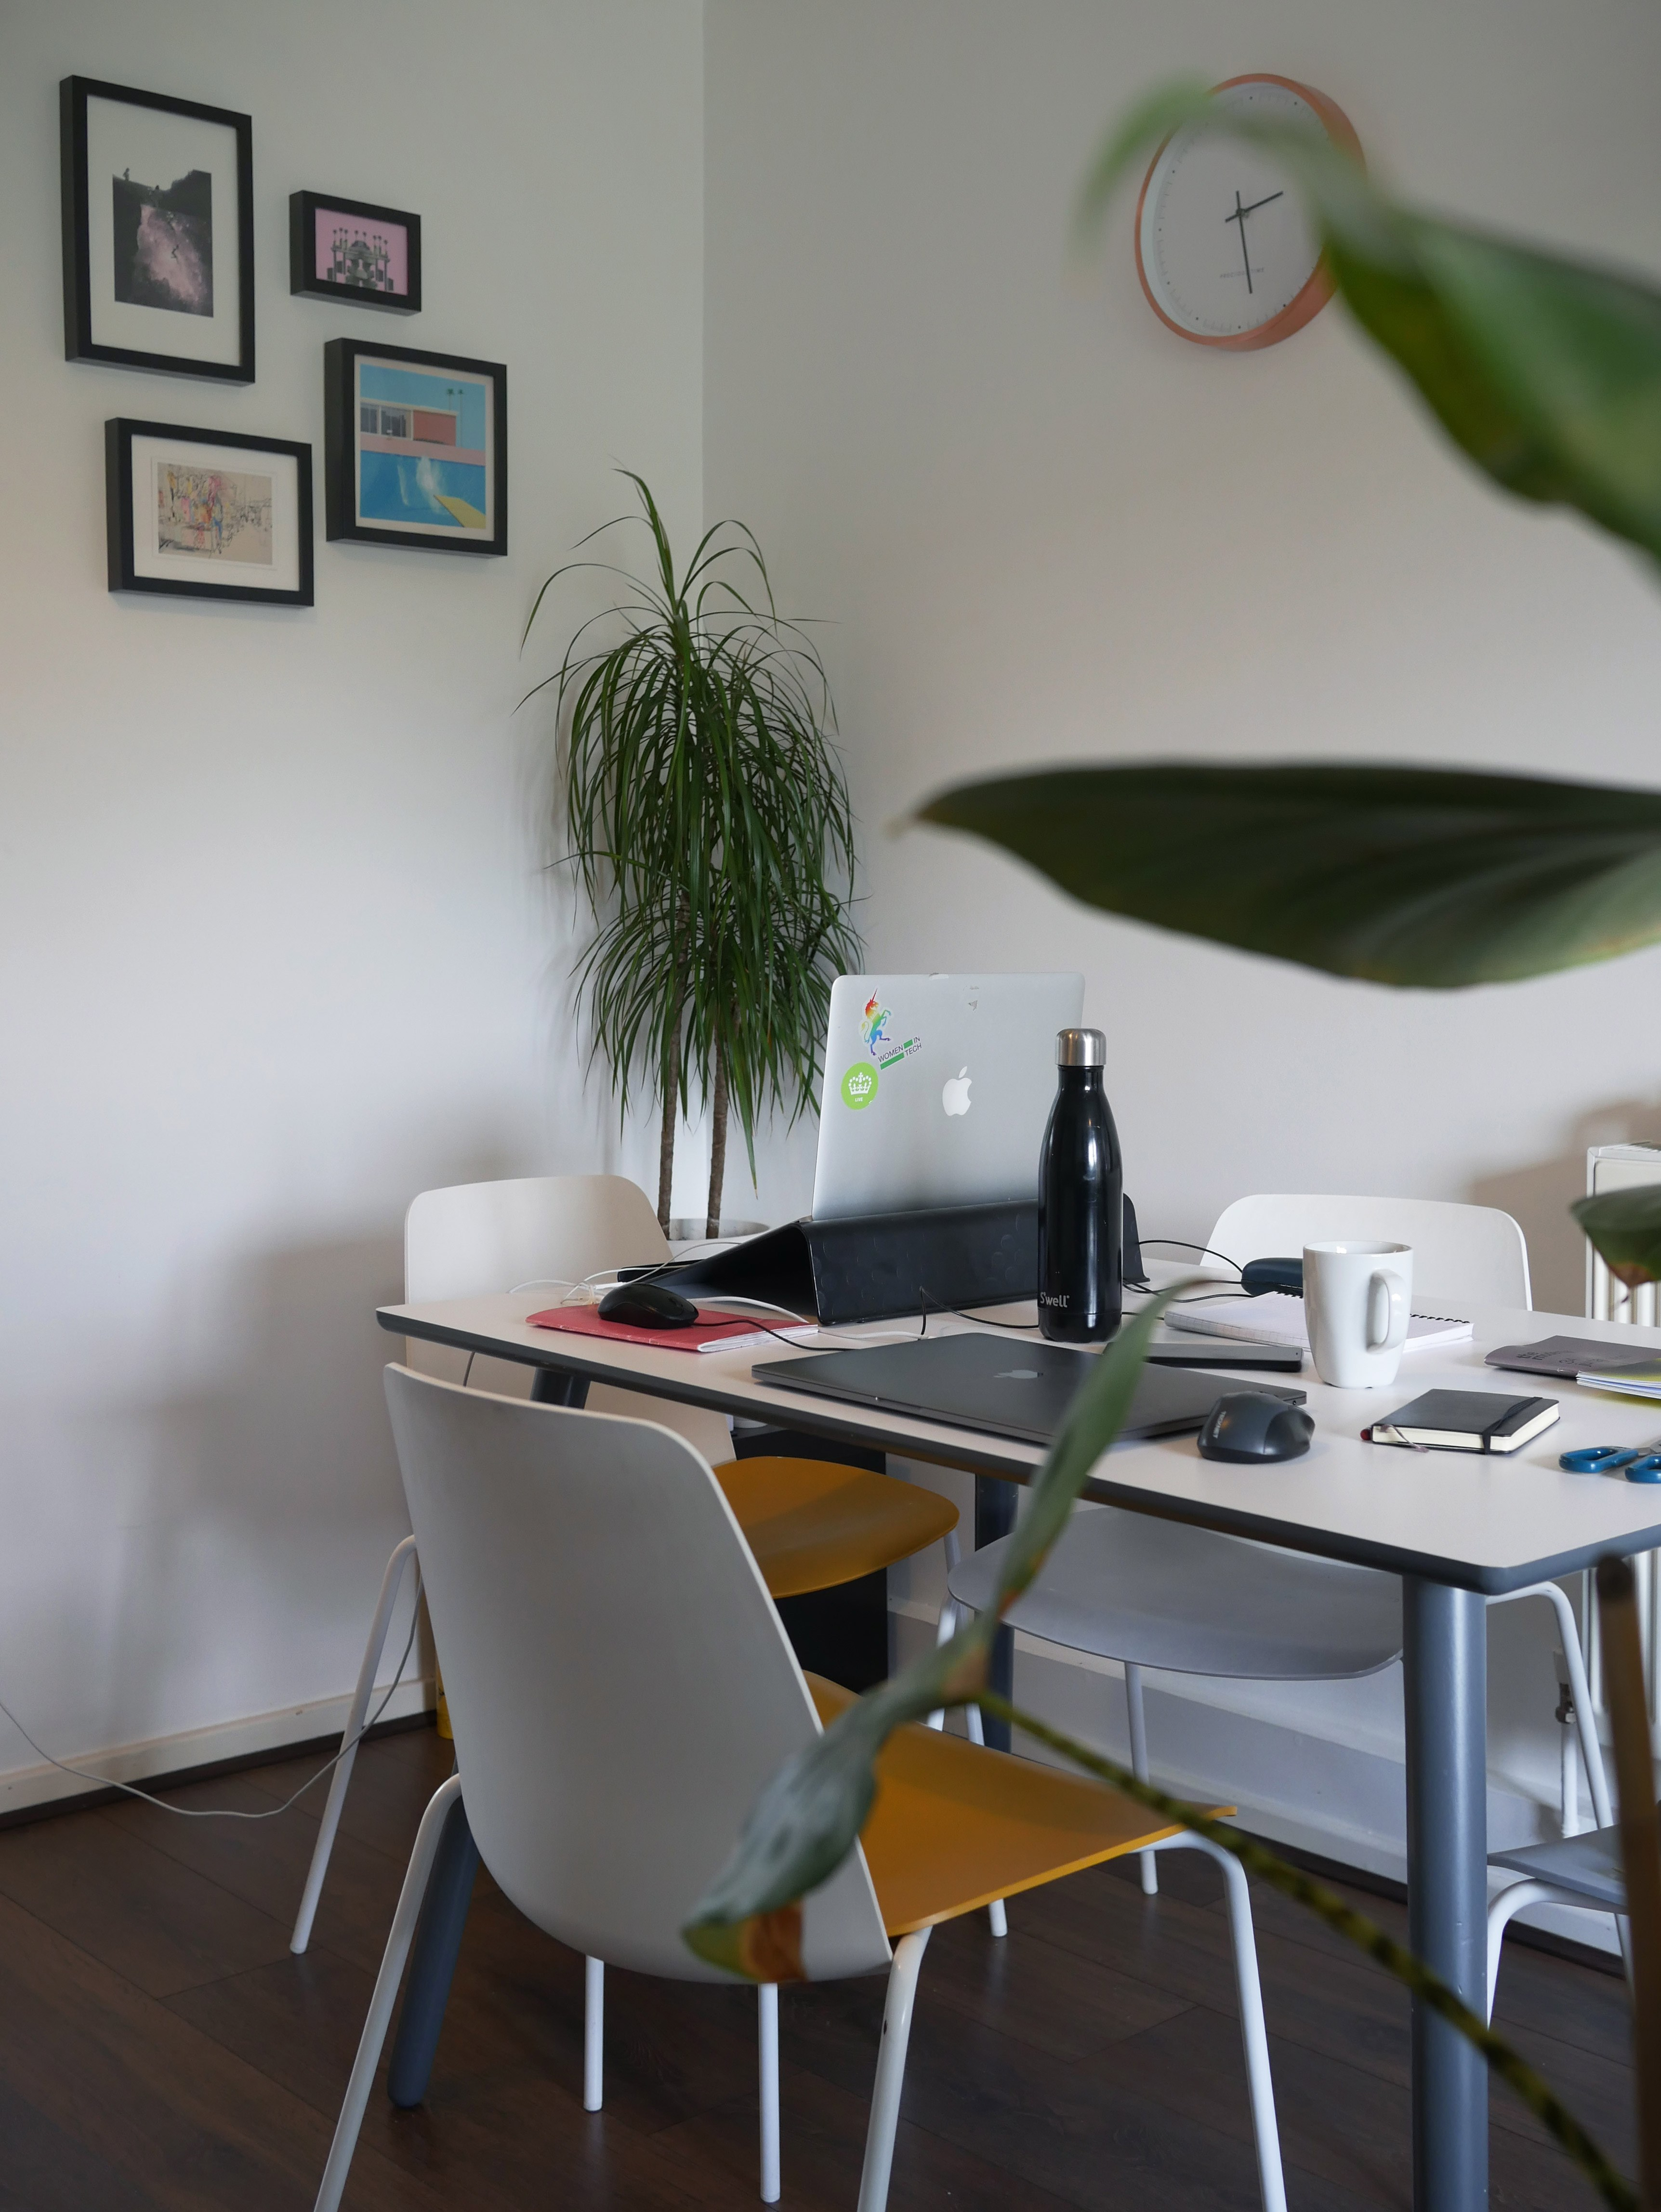 Peaceful desk with potted plants